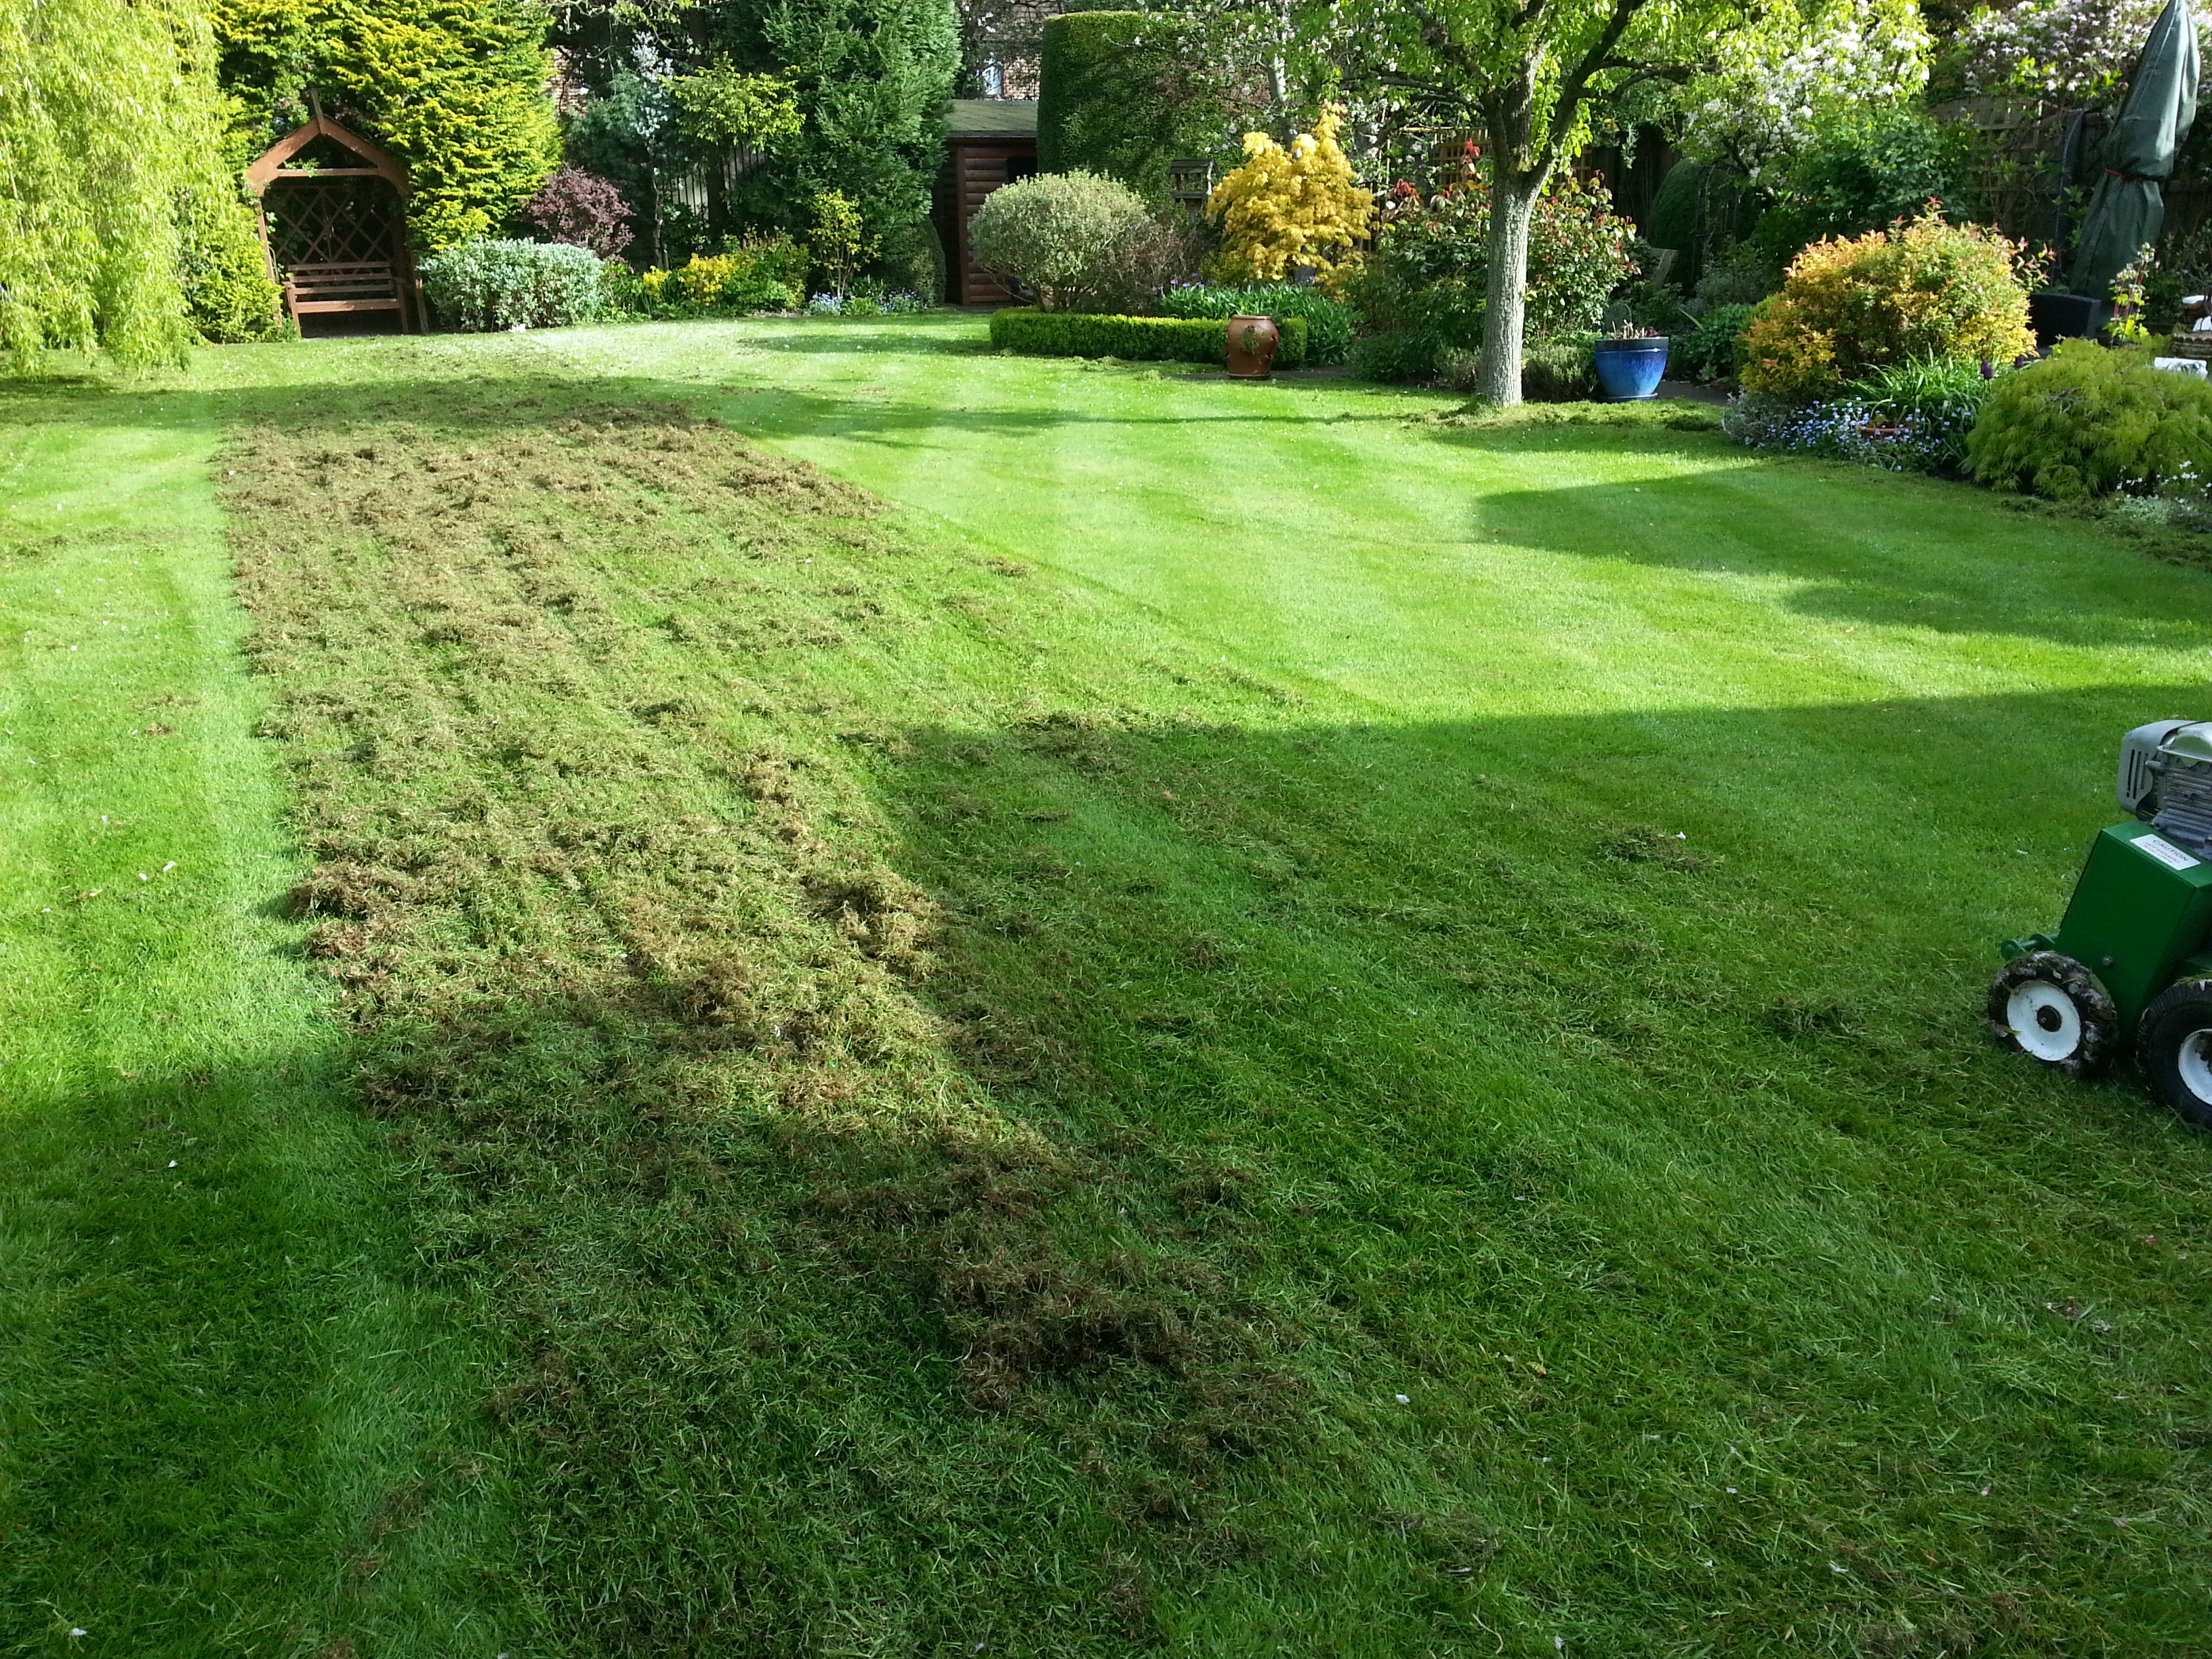 Lawn Scarification, Lawn Care, Cheadle Hulme, Stockport, Cheshire